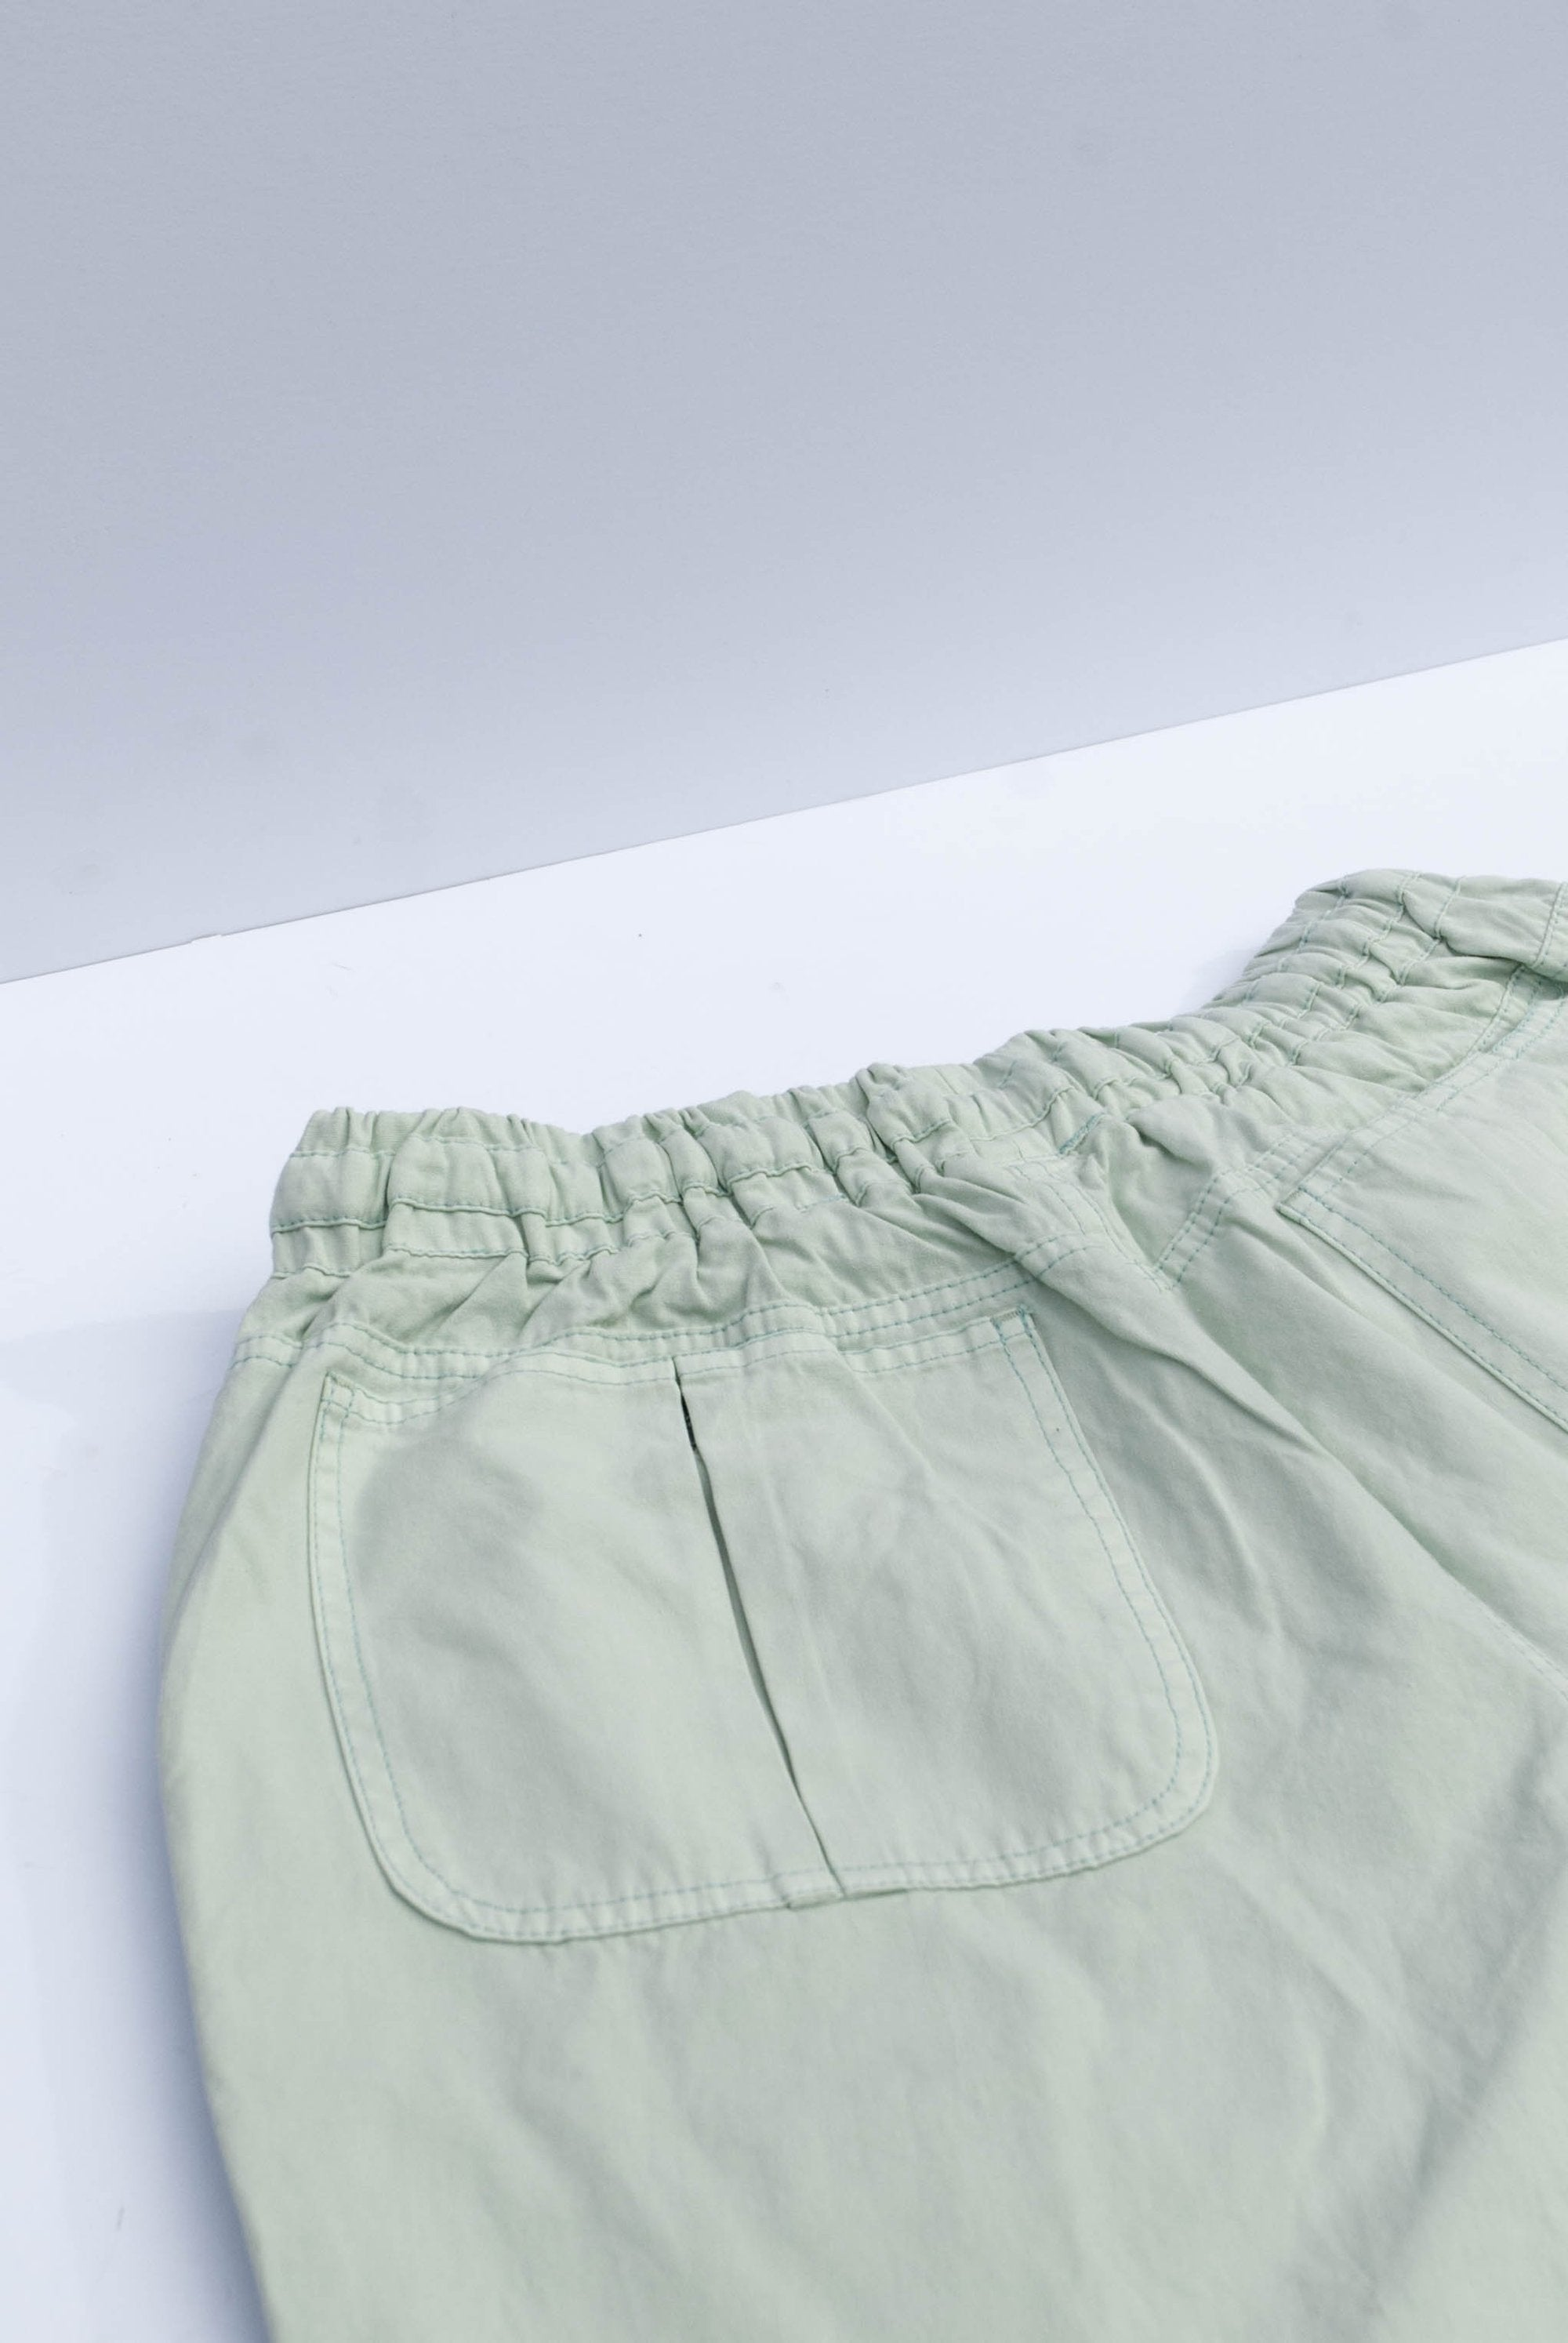 Komodo Unisex Danny Trousers in Mineral Green